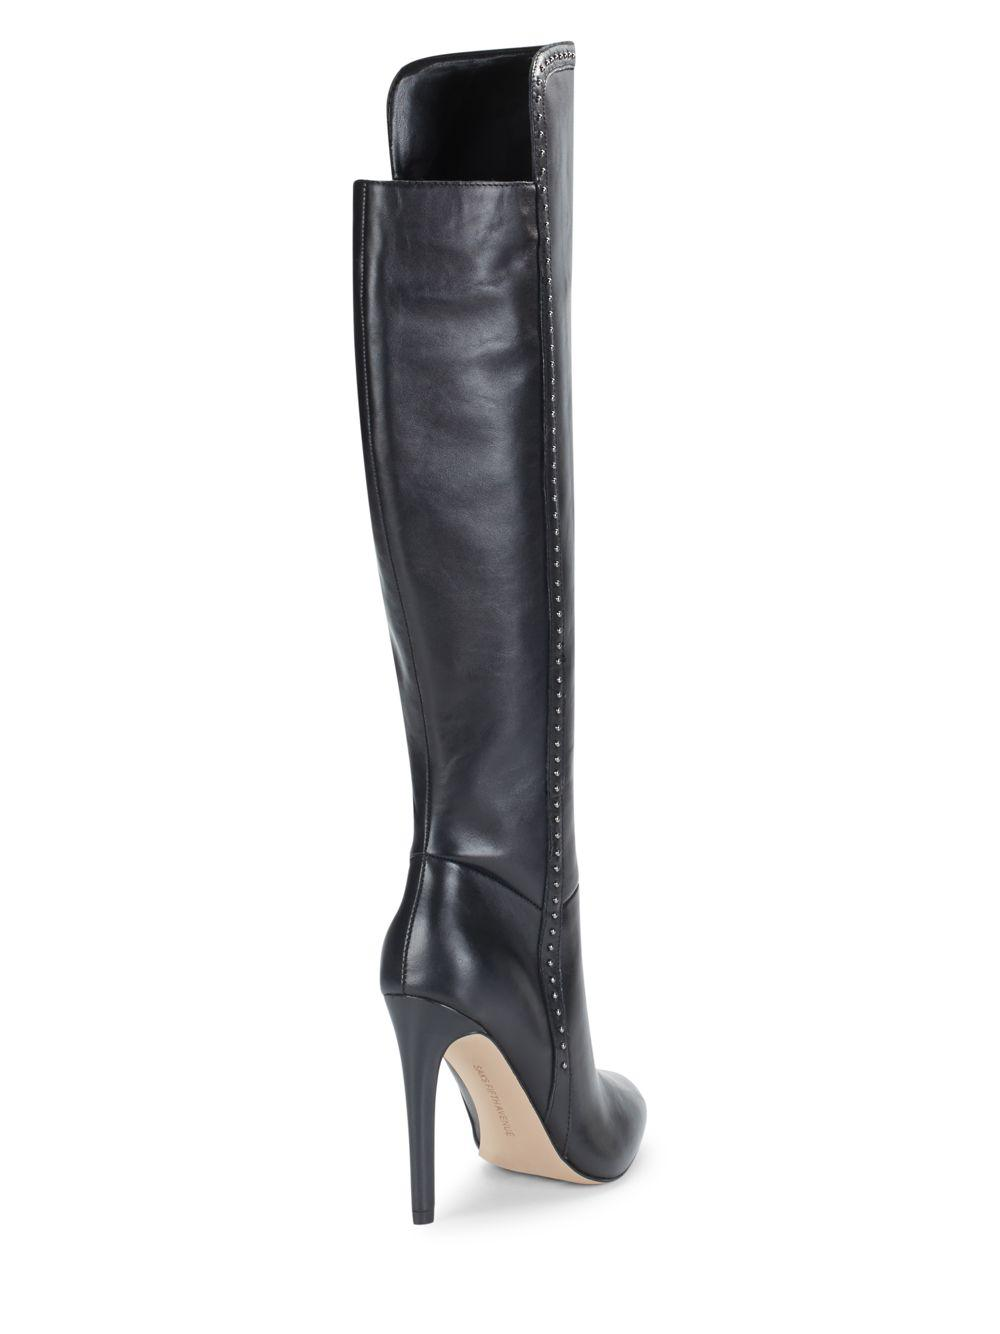 Saks Fifth Avenue Round-Toe Knee-High Boots best wholesale online nicekicks quality from china cheap clearance big discount PXuurH